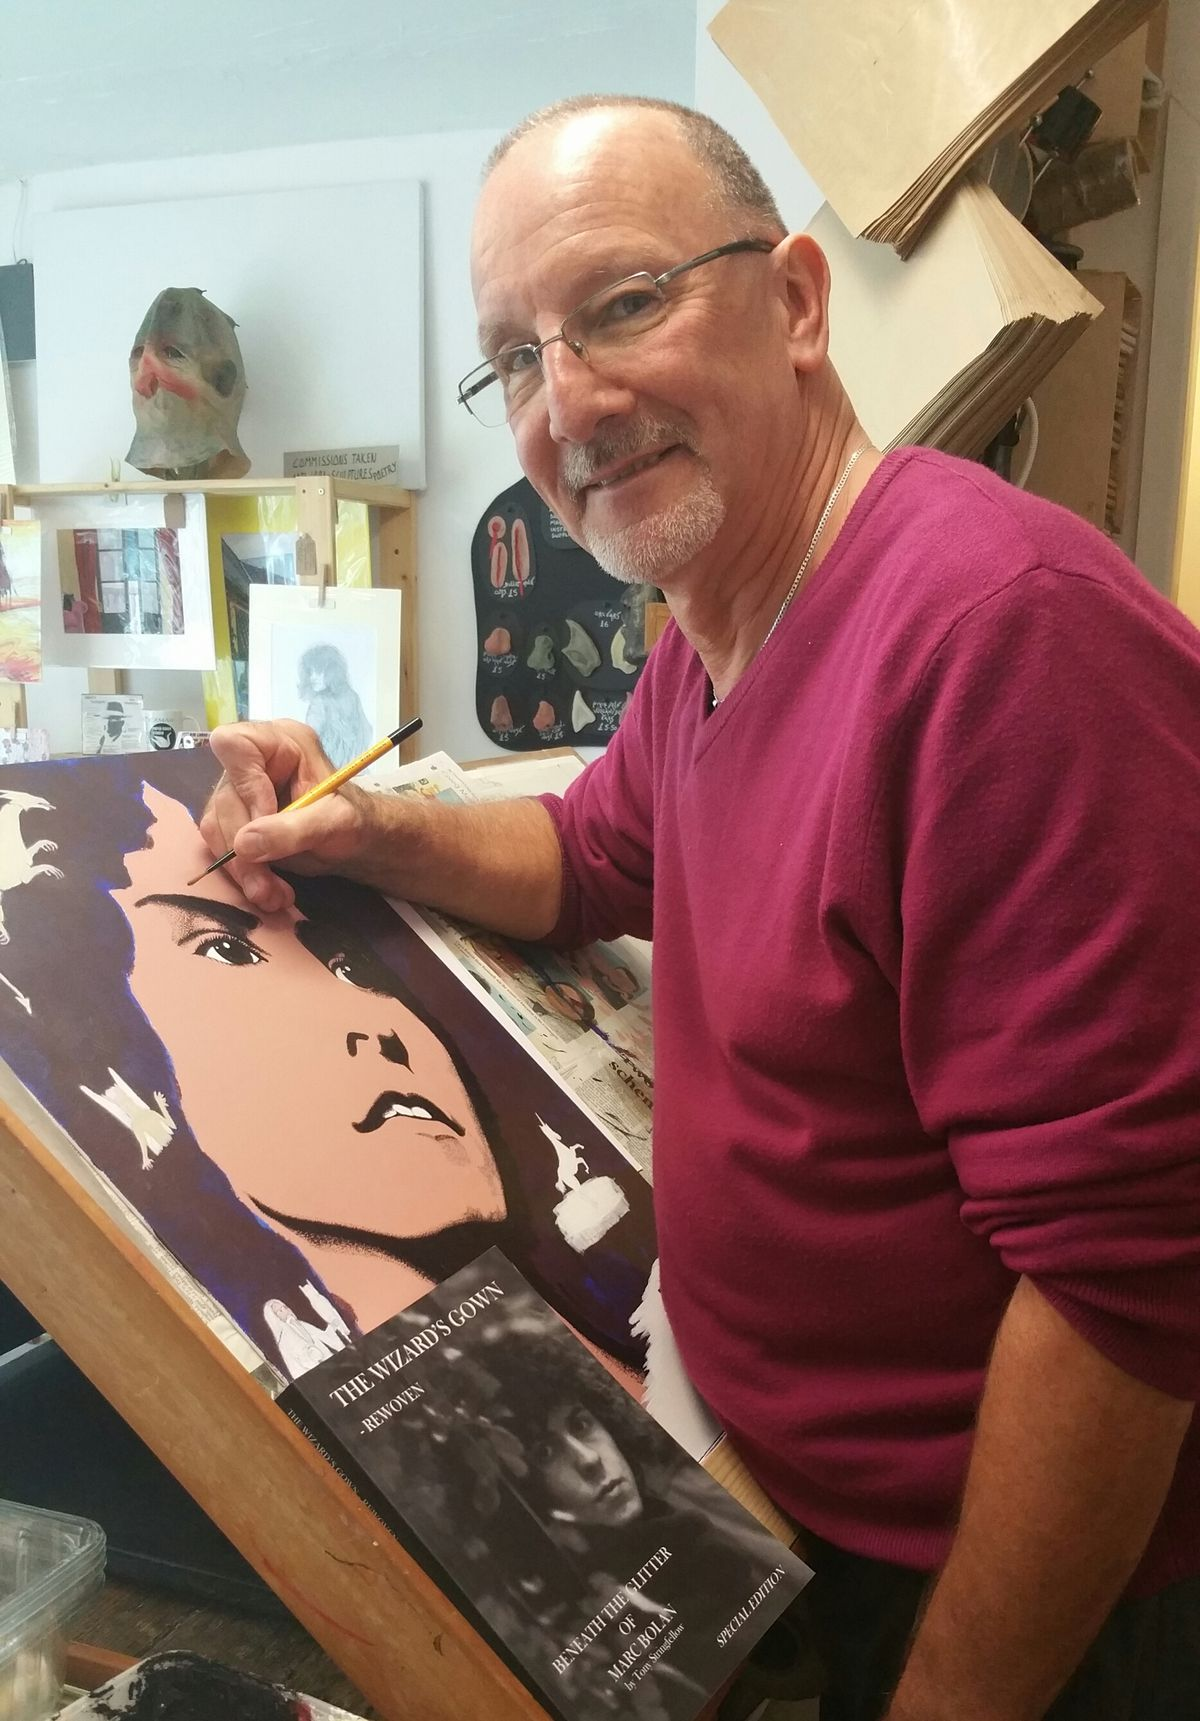 Tony Stringfellow, working on a painting of his hero Marc Bolan